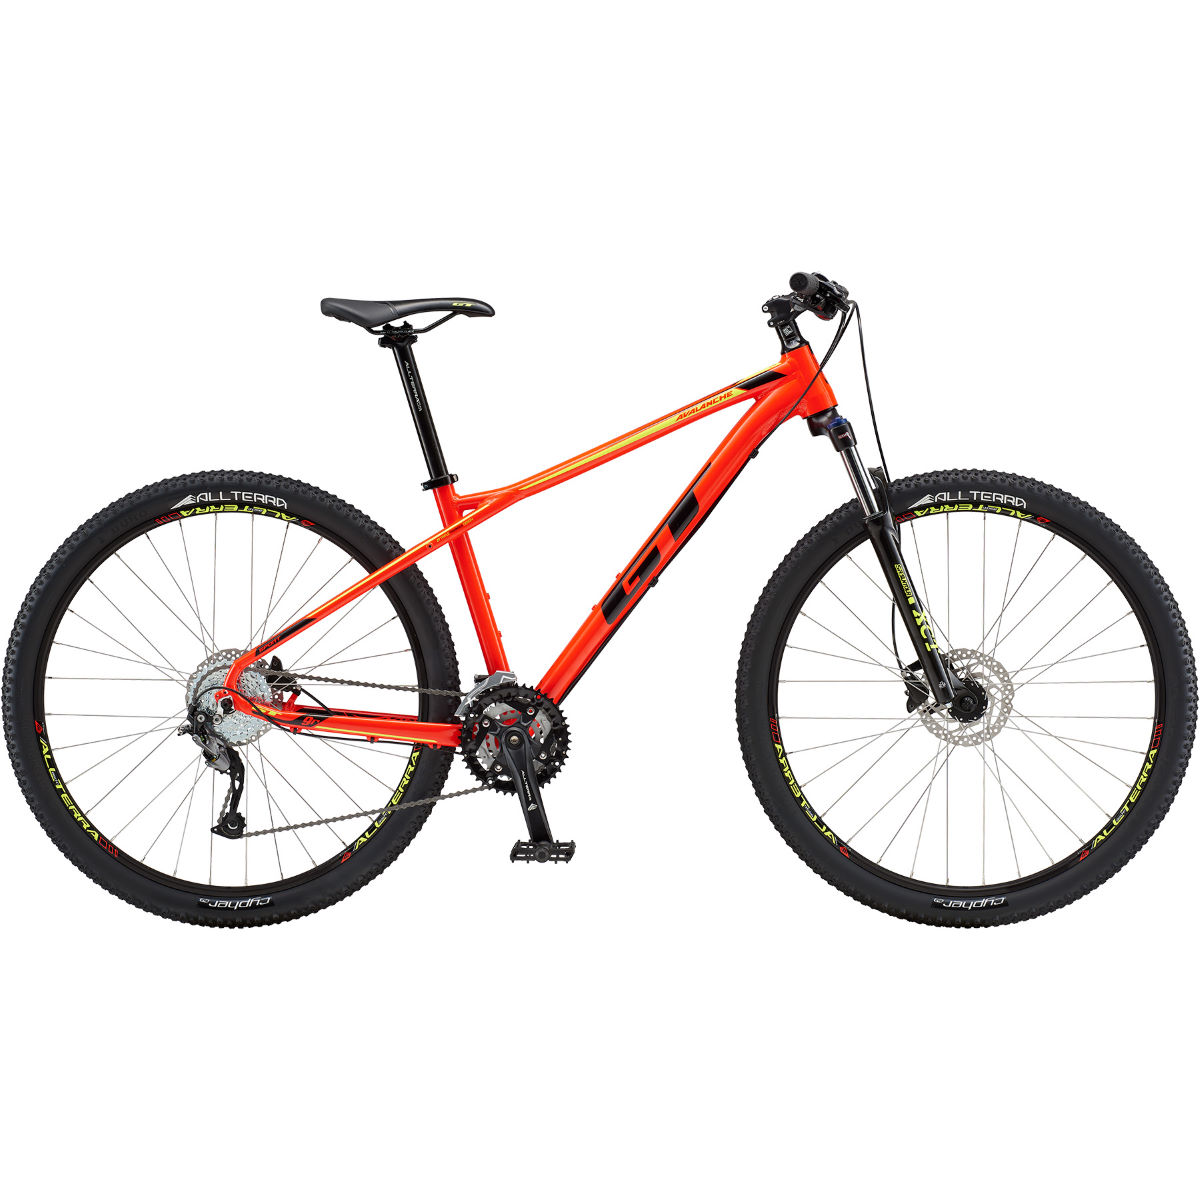 VTT semi-rigide GT Avalanche Sport 29 - Medium Stock Bike Rouge